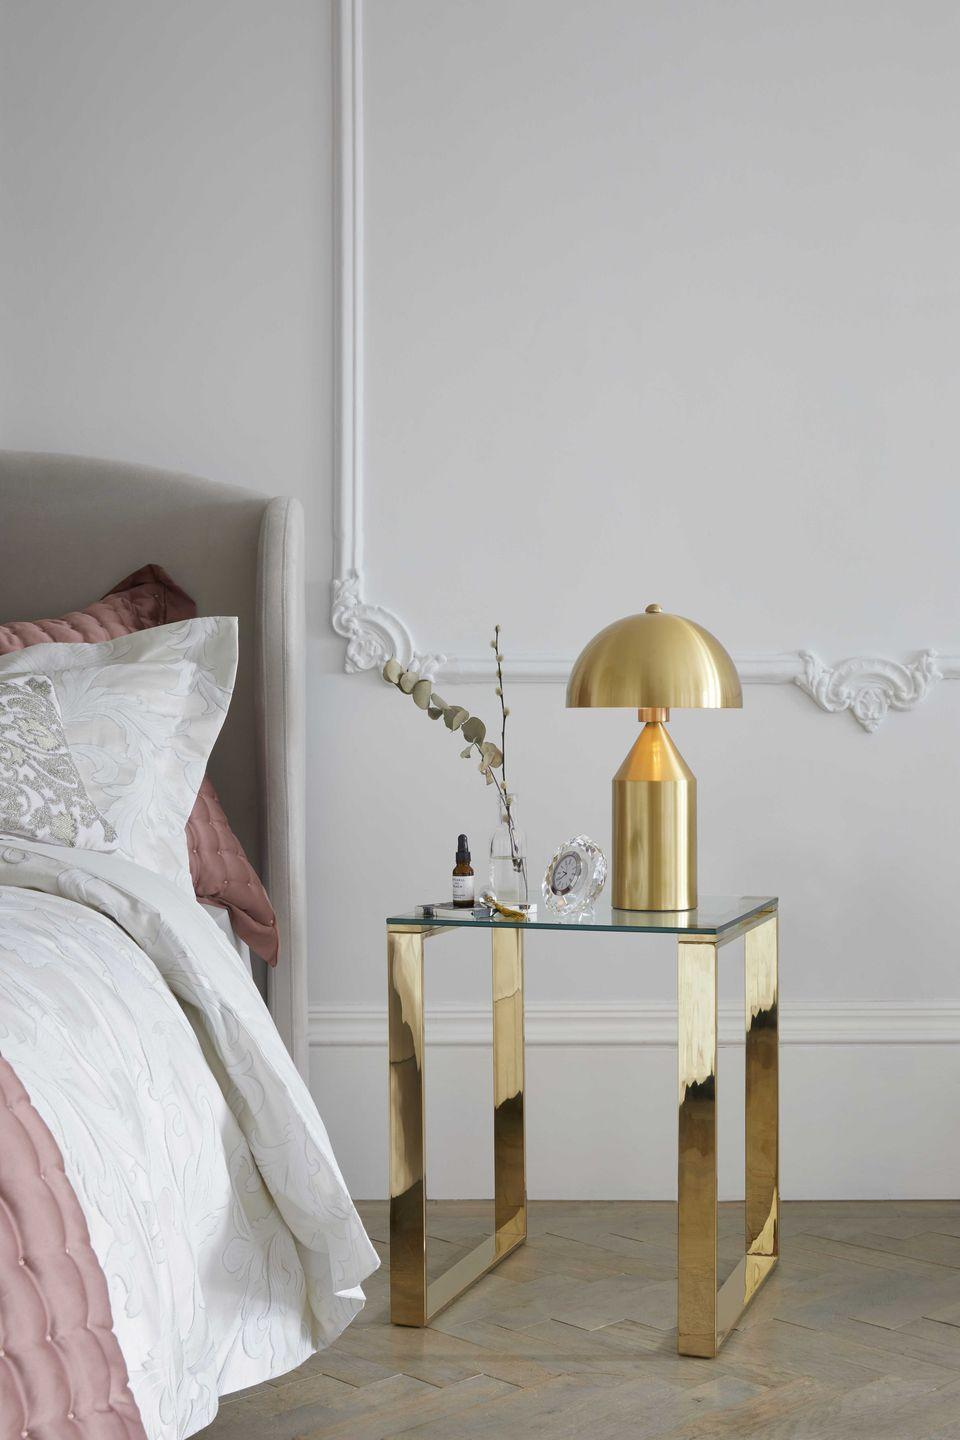 "<p><strong>Lighting — such as this gold one from Dunelm — is sure to give a reason for your followers to double-tap on your feed. </strong></p><p>When opting for bedroom lighting, don't be afraid to go bold. Placing one on your bedside cabinet will not only be practical when it comes to reading before bed, but it will help to transform your space. </p><p><strong>Pictured</strong>: <a href=""https://go.redirectingat.com?id=127X1599956&url=https%3A%2F%2Fwww.dunelm.com%2Fproduct%2Falbany-gold-table-lamp-1000110303&sref=https%3A%2F%2Fwww.housebeautiful.com%2Fuk%2Fdecorate%2Fbedroom%2Fg28786488%2Finstagram-bedroom%2F"" rel=""nofollow noopener"" target=""_blank"" data-ylk=""slk:Gold table lamp, £104, Dunelm"" class=""link rapid-noclick-resp"">Gold table lamp, £104, Dunelm</a> </p><p><a class=""link rapid-noclick-resp"" href=""https://go.redirectingat.com?id=127X1599956&url=https%3A%2F%2Fwww.dunelm.com%2Fproduct%2Falbany-gold-table-lamp-1000110303&sref=https%3A%2F%2Fwww.housebeautiful.com%2Fuk%2Fdecorate%2Fbedroom%2Fg28786488%2Finstagram-bedroom%2F"" rel=""nofollow noopener"" target=""_blank"" data-ylk=""slk:BUY NOW"">BUY NOW</a></p>"